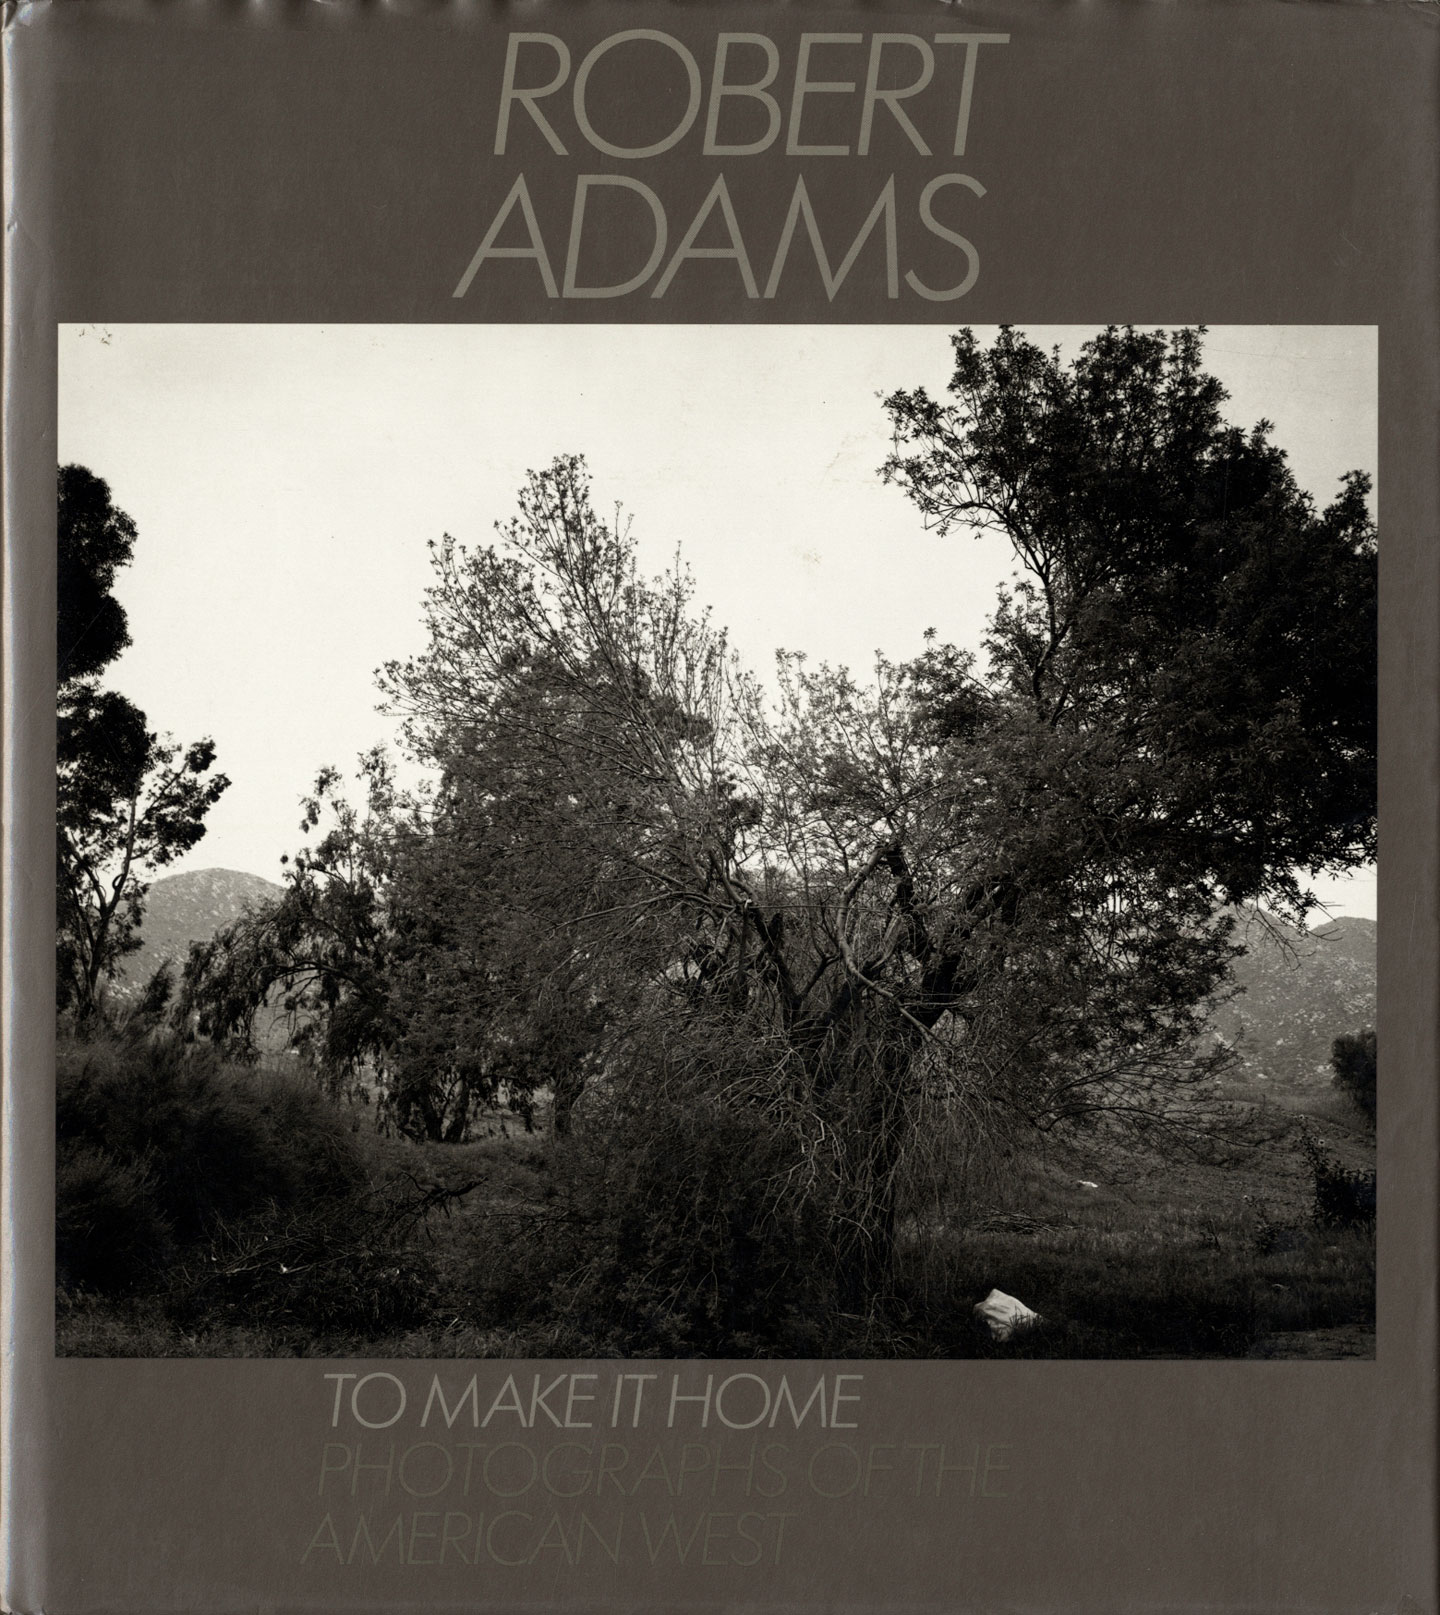 Robert Adams: The Complete Collection of 55 Books and Catalogues [All Titles SIGNED, First Edition, First Printing, in Fine or As New Condition; Some Titles Limited Editions; Includes Additional Ephemera]